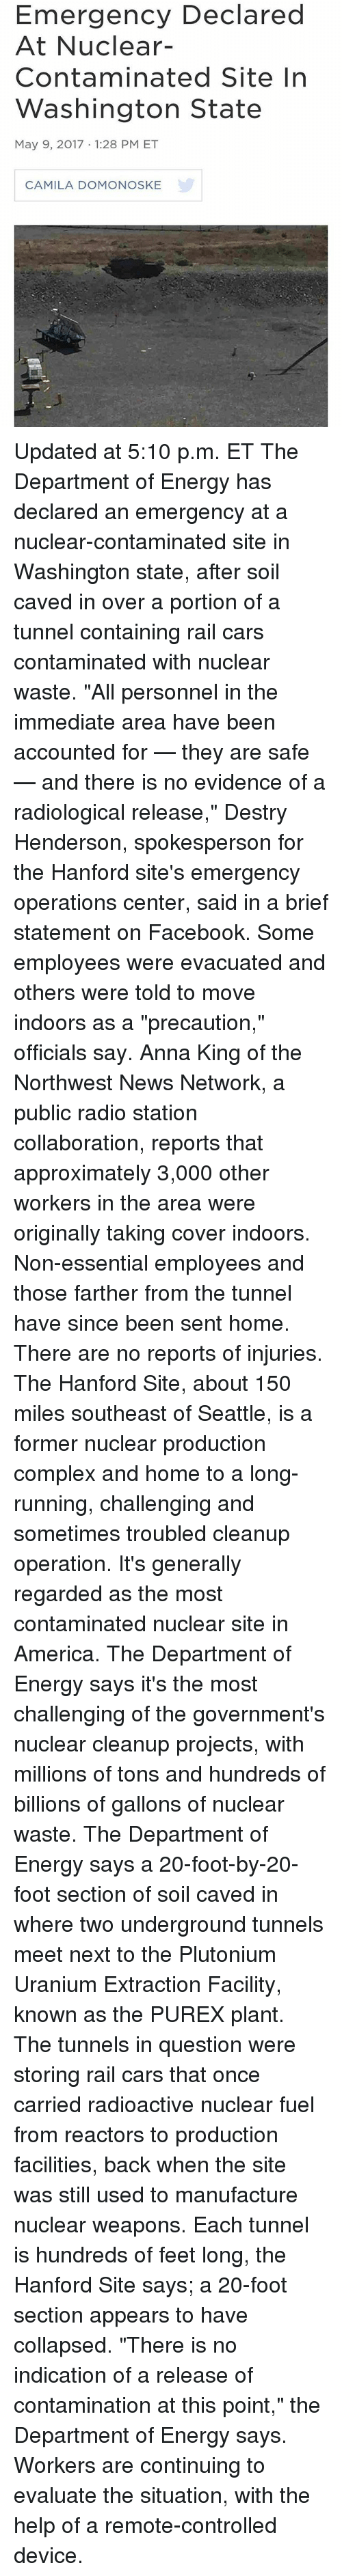 America, Anna, and Cars: Emergency Declared At Nuclear- Contaminated Site In Washington